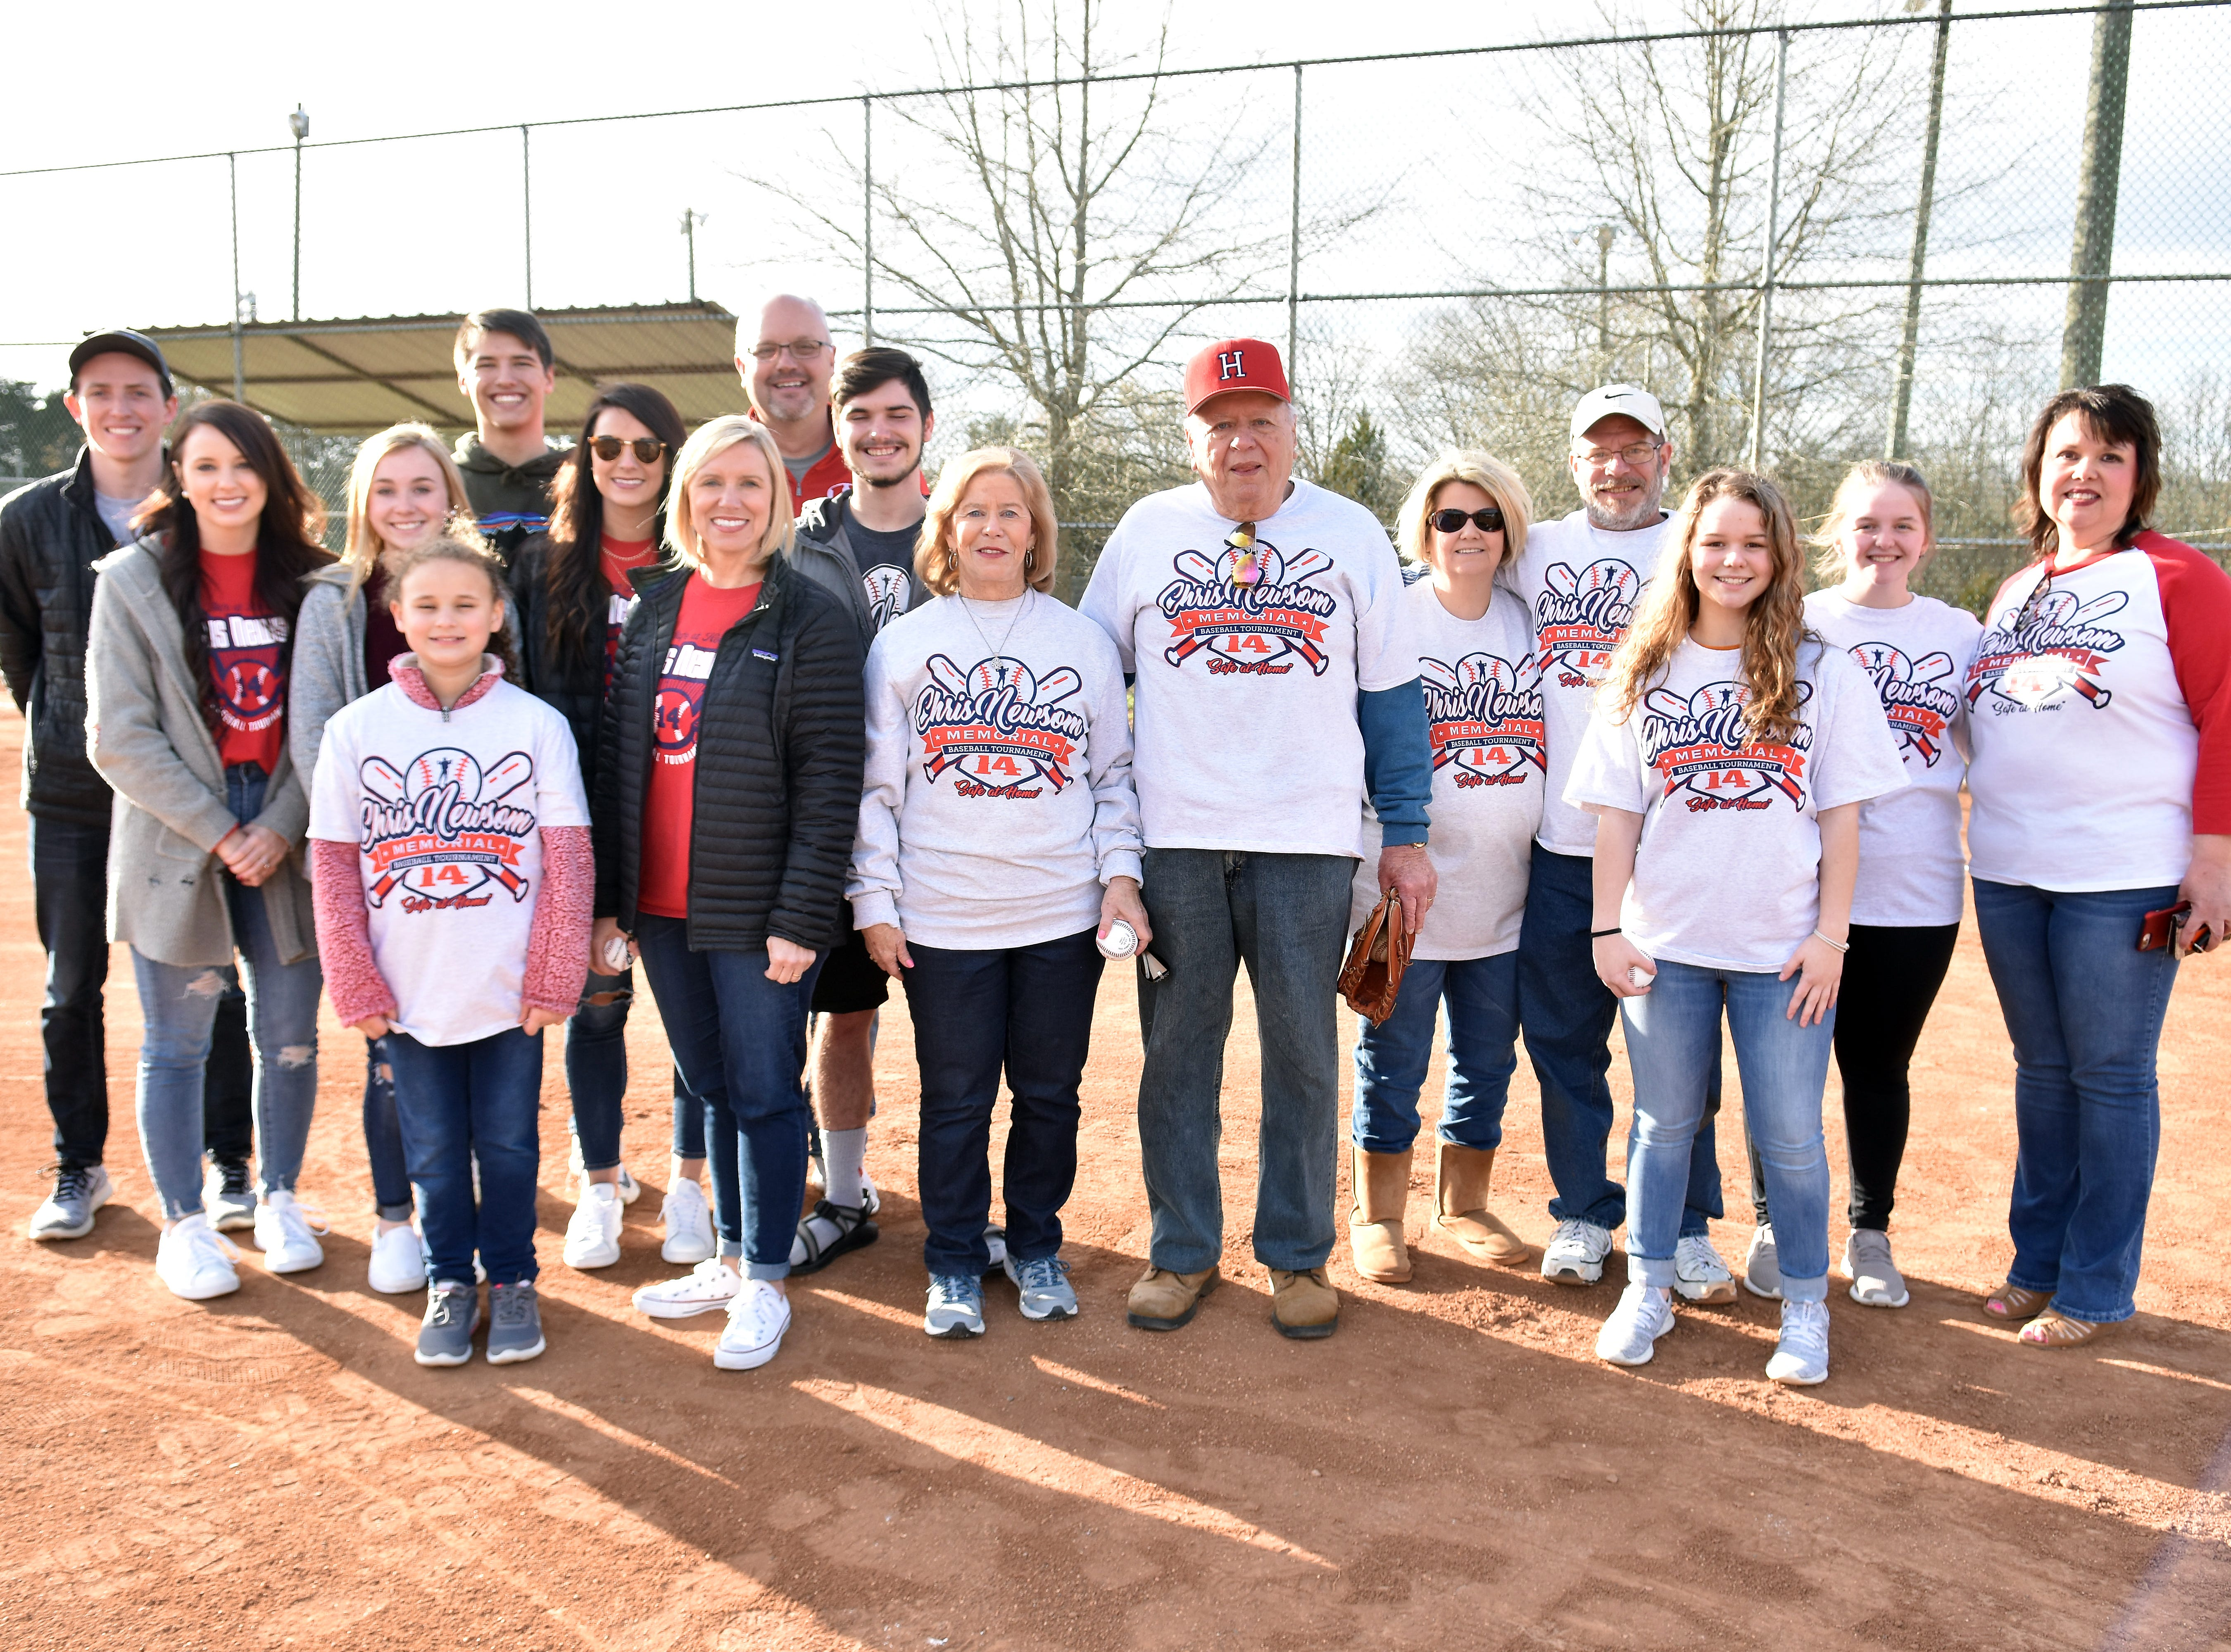 The Newsom family gathered for the opening of the 2019 Chris Newsom Memorial Tournament at Halls Community Park.